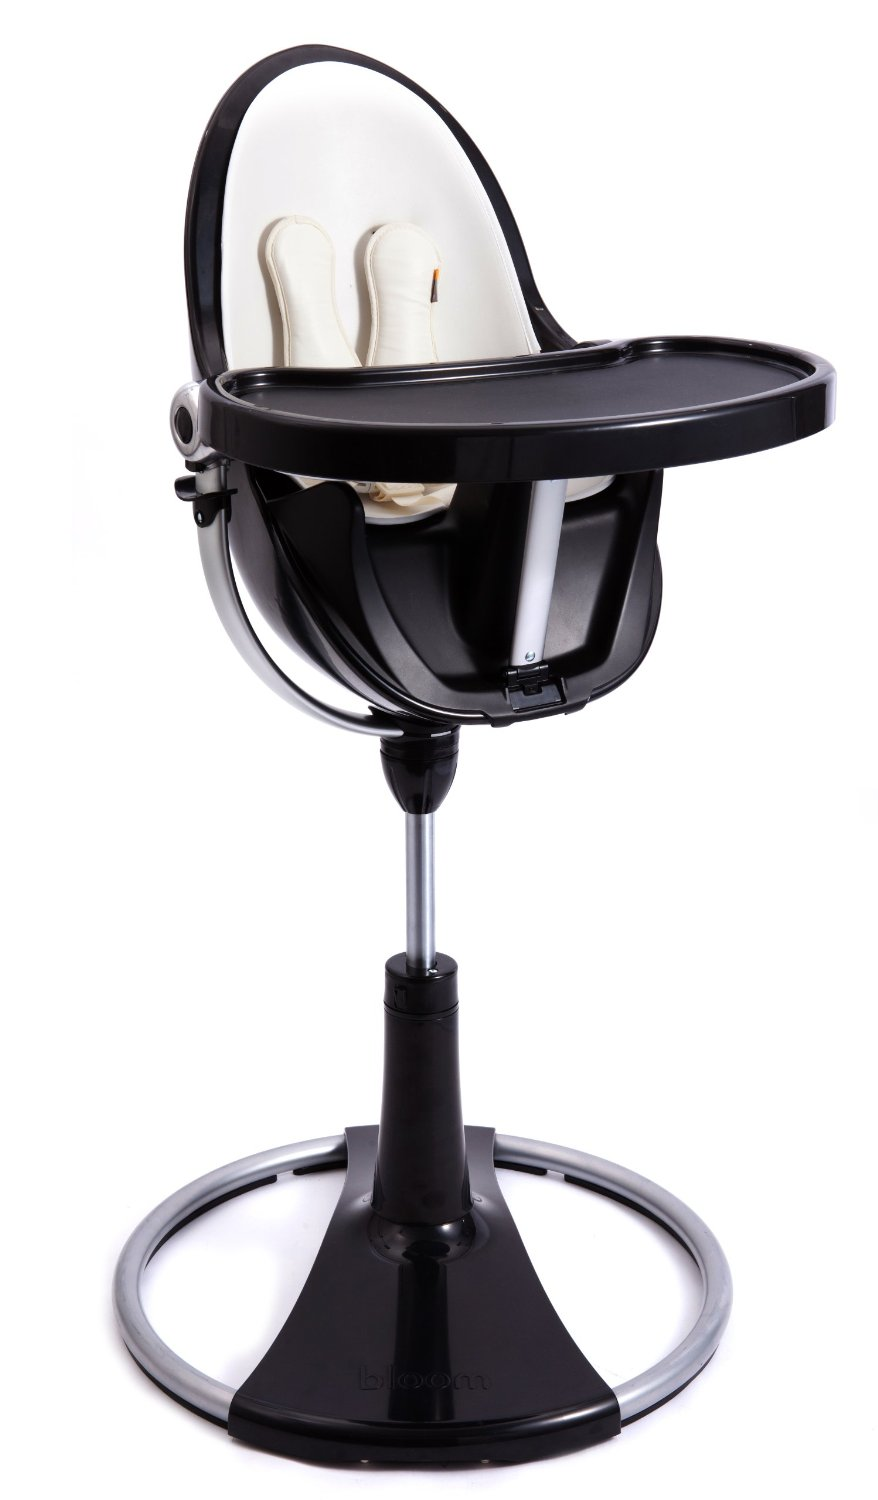 bloom fresco chrome contemporary high chair blackwhite insert  - thumbnail